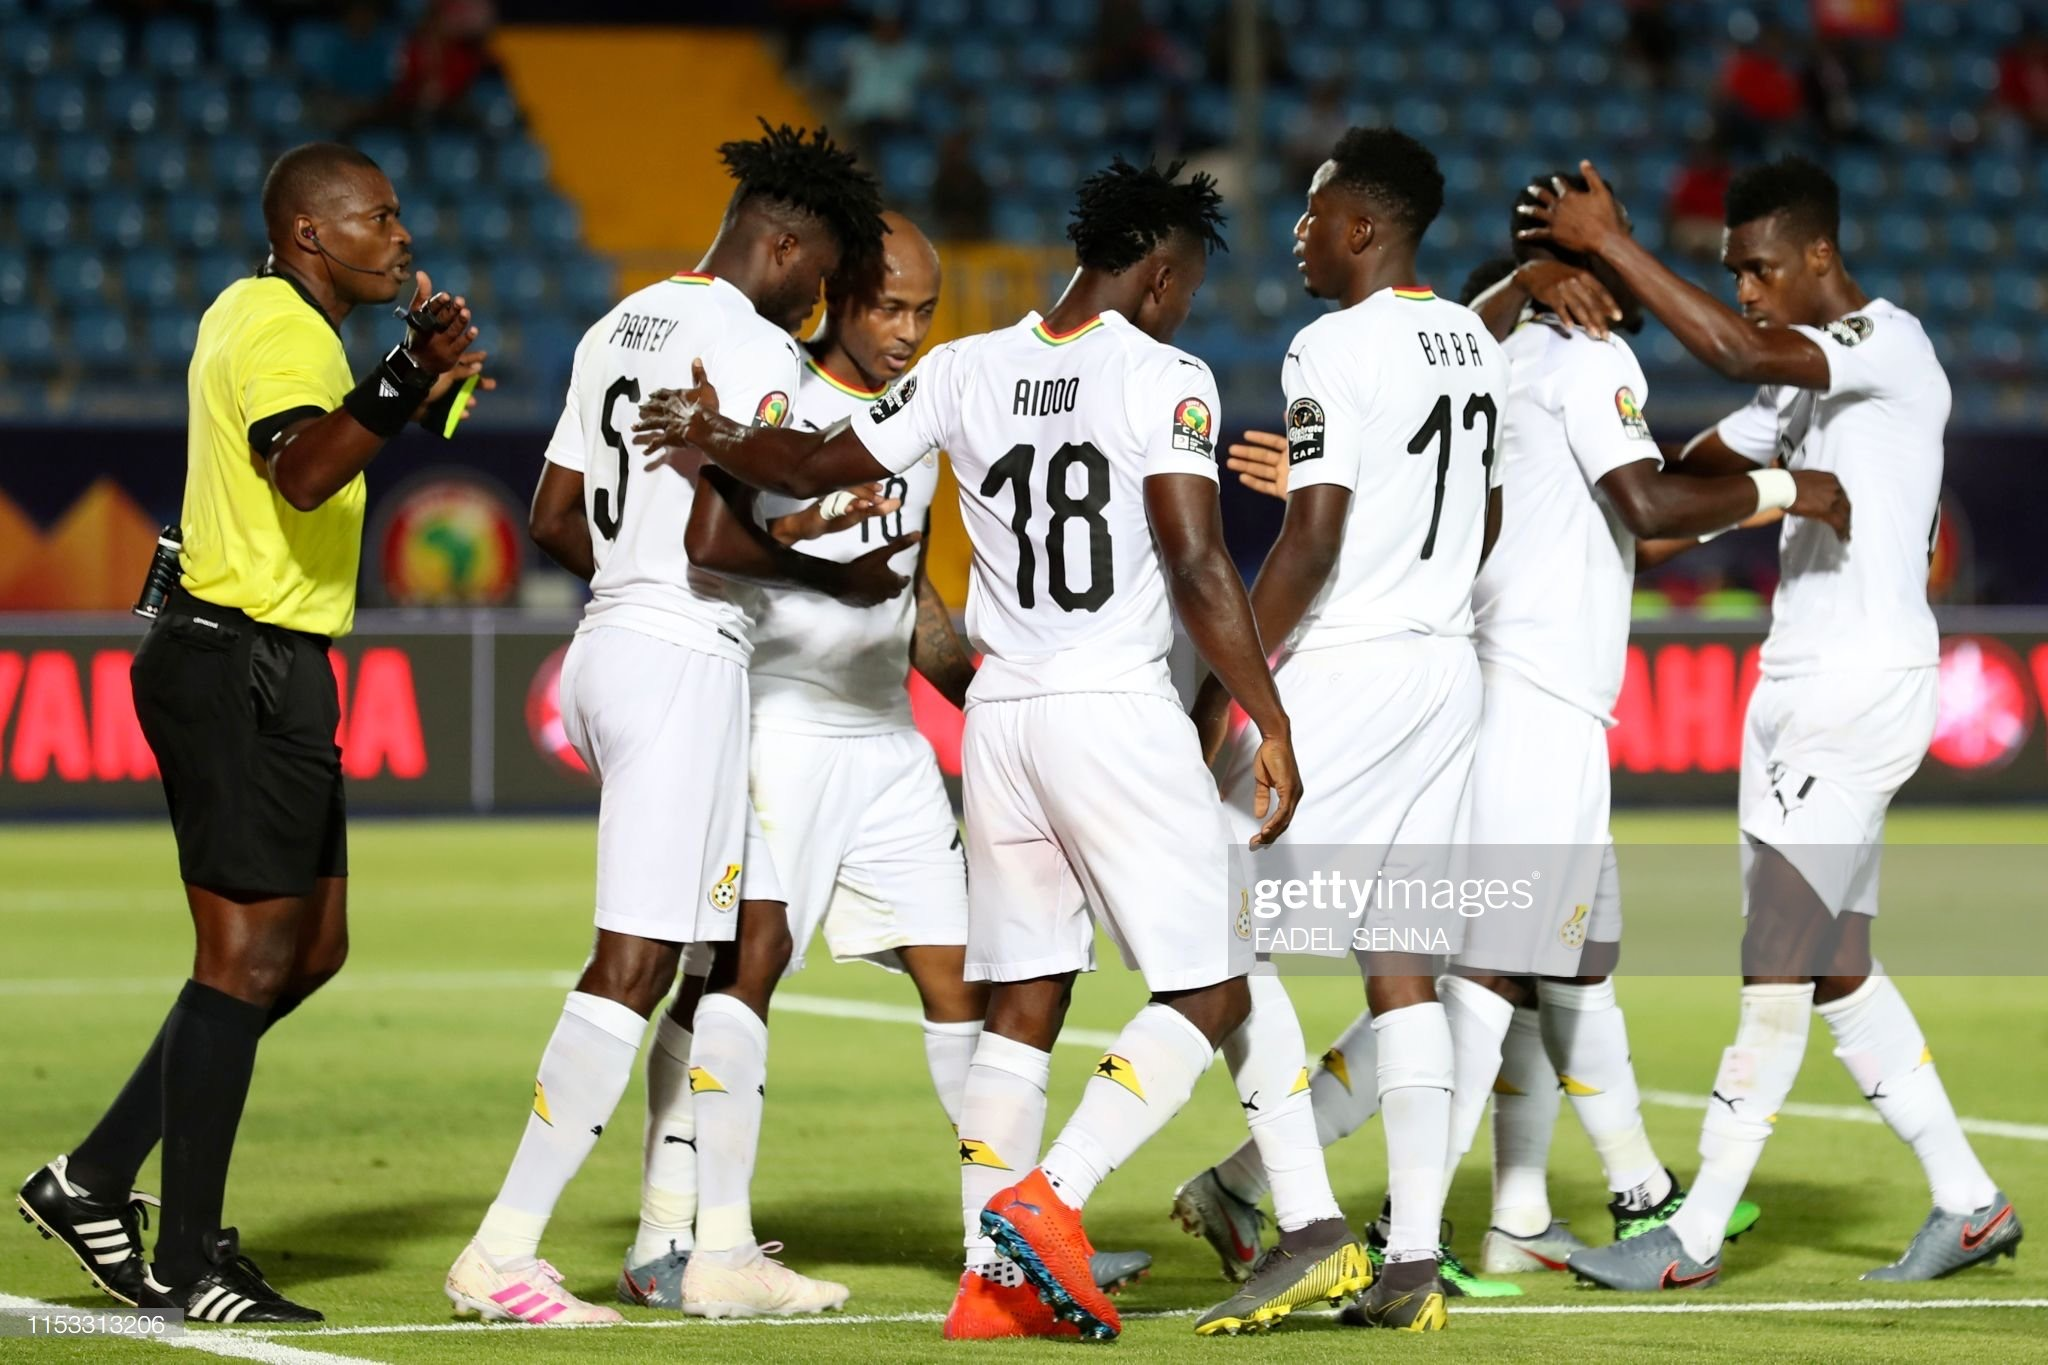 Thomas Partey and Kudus fire Ghana to first victory in 2021 AFCON qualifiers after a 2-0 win over South Africa